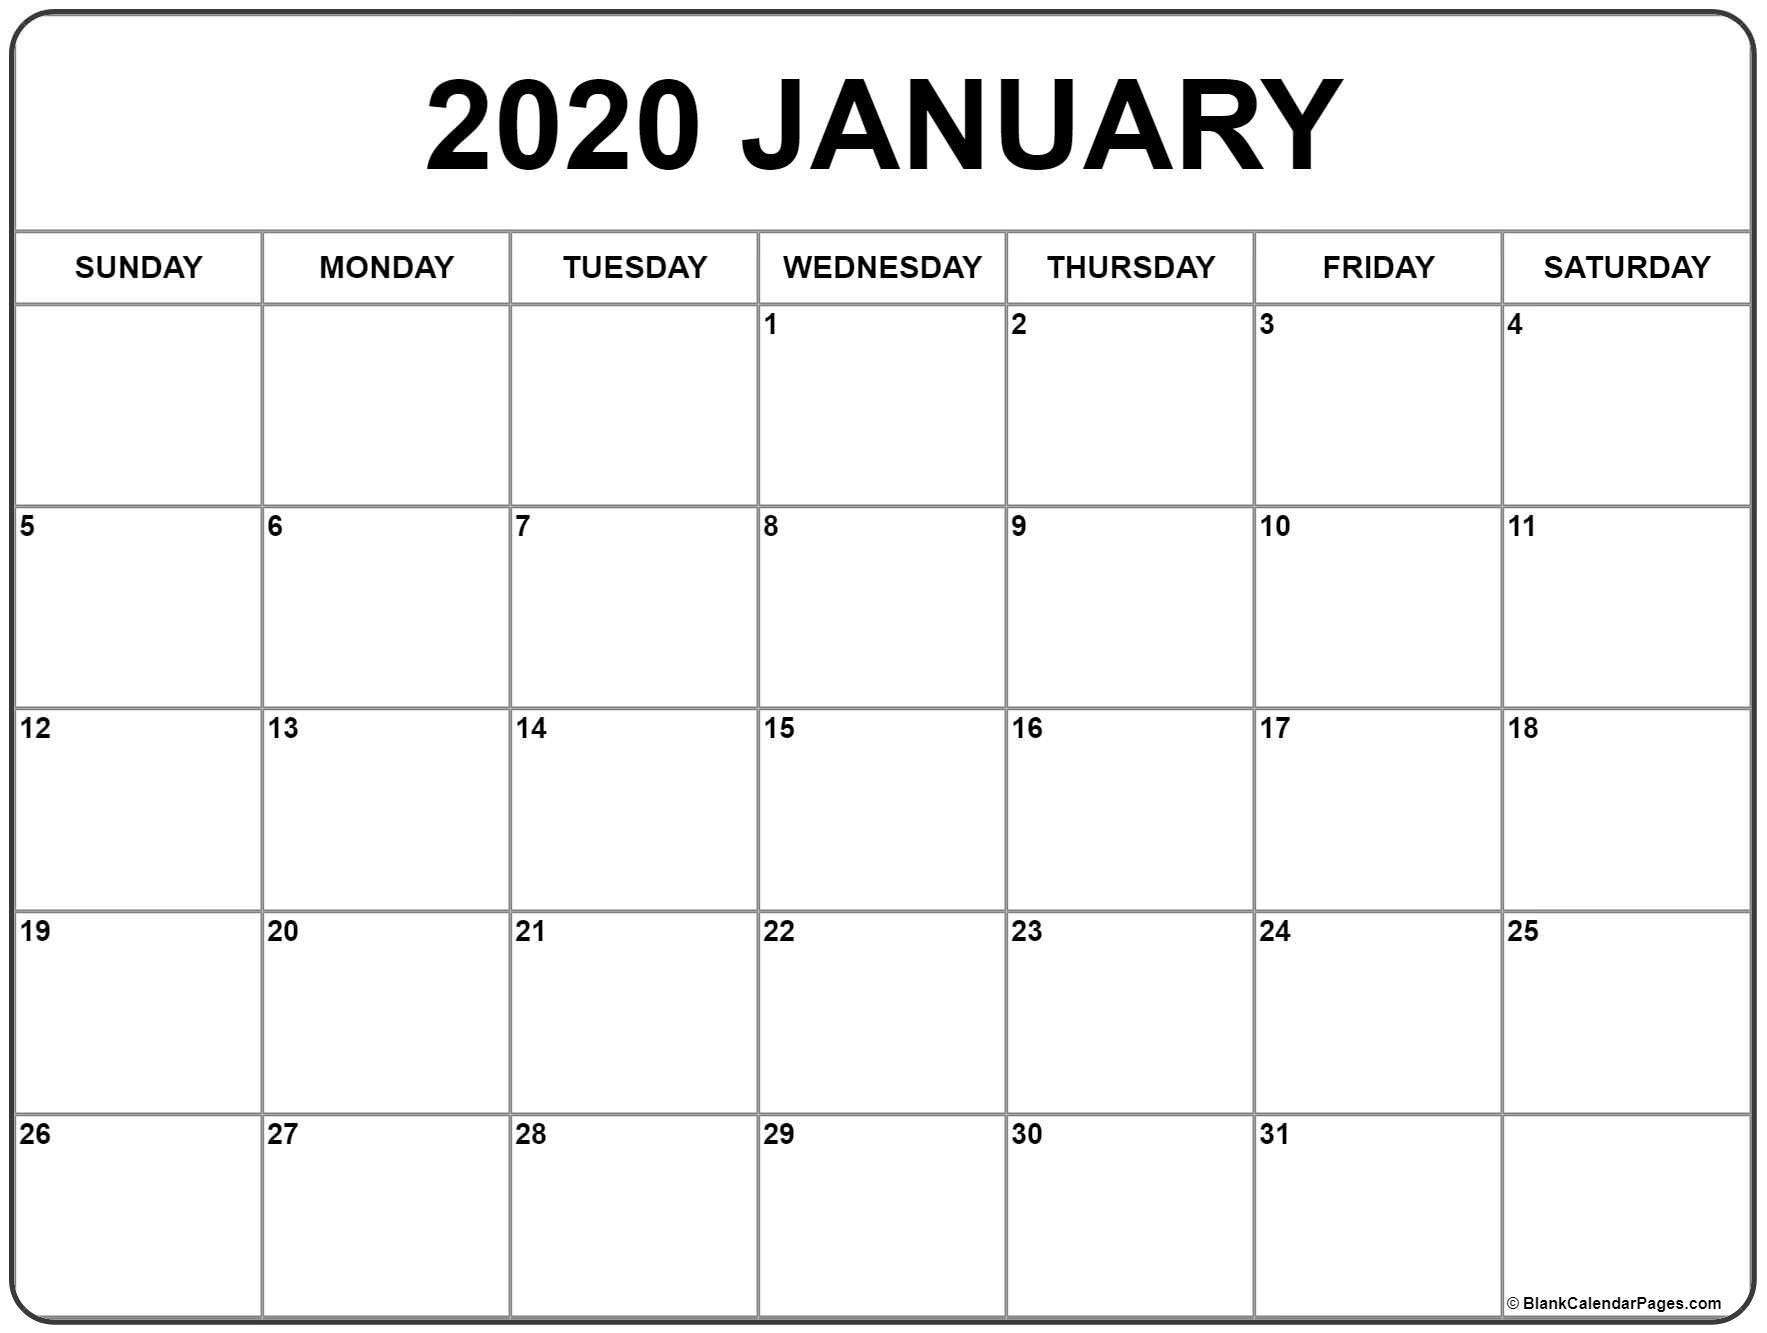 January 2020 Calendar | Free Printable Monthly Calendars-2020 Calenderwa School Holidays Printable